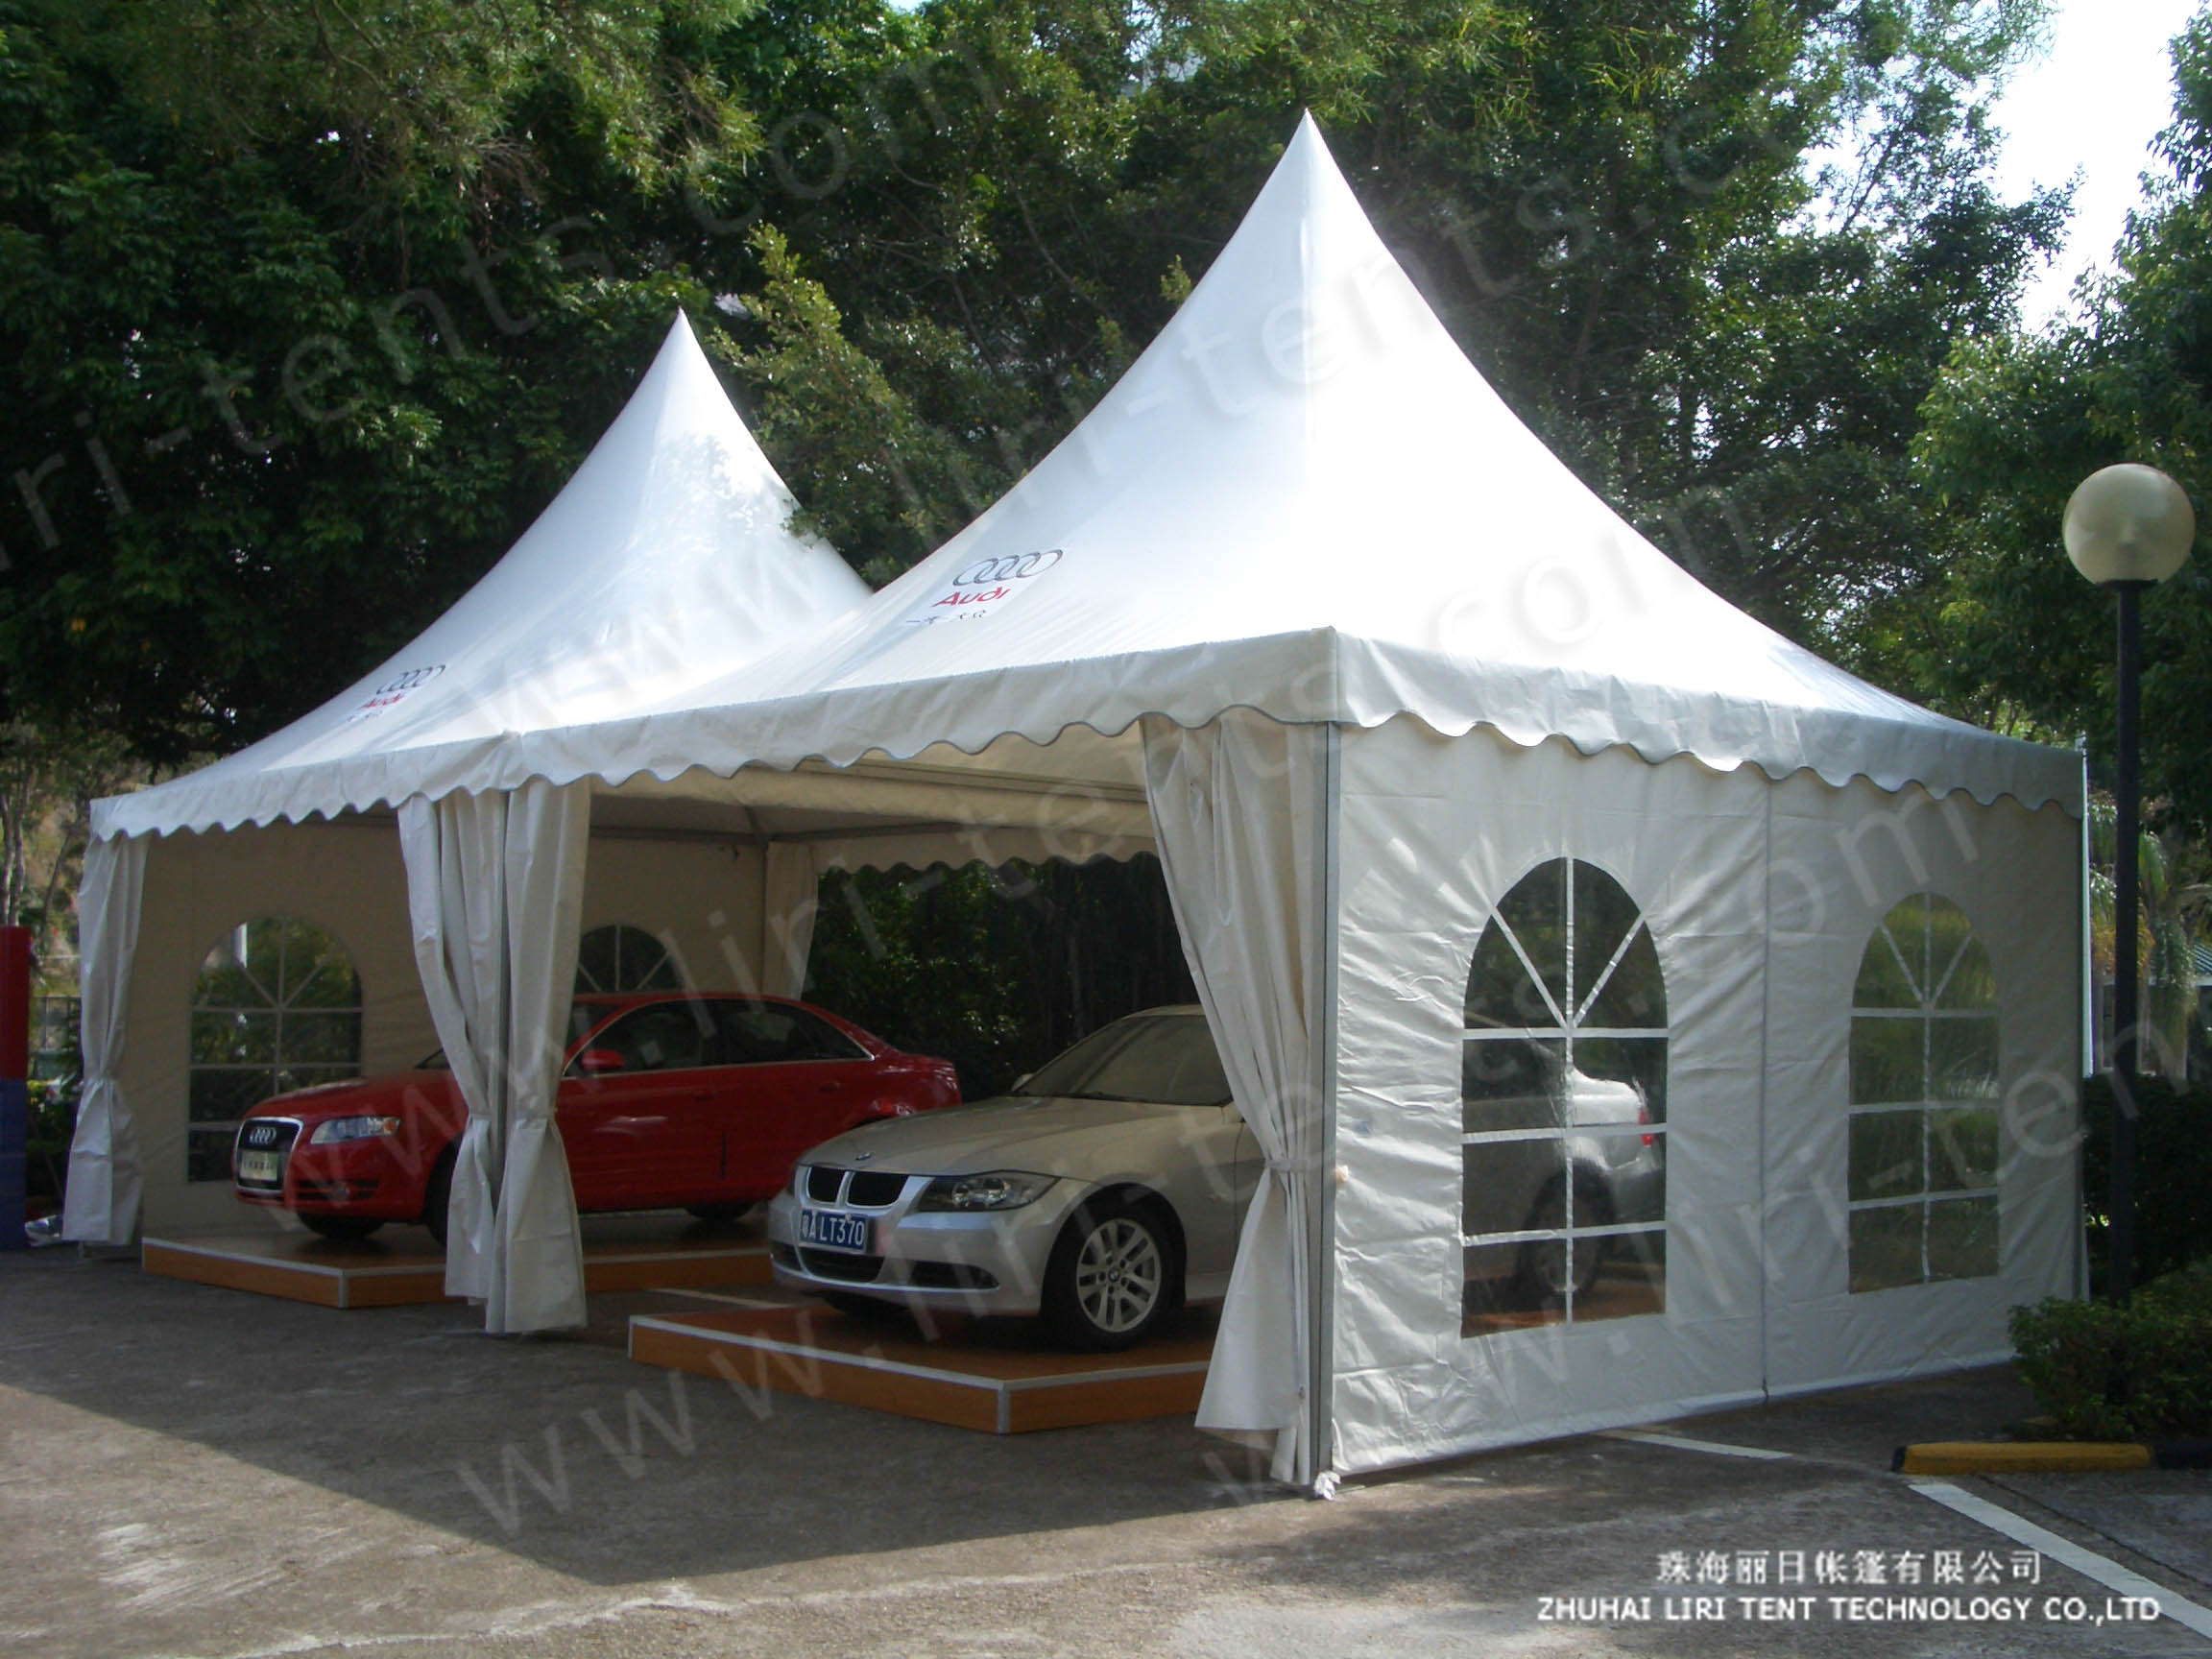 & Liri Brand Commercial Outdoor Gazebo Tent for Car Show